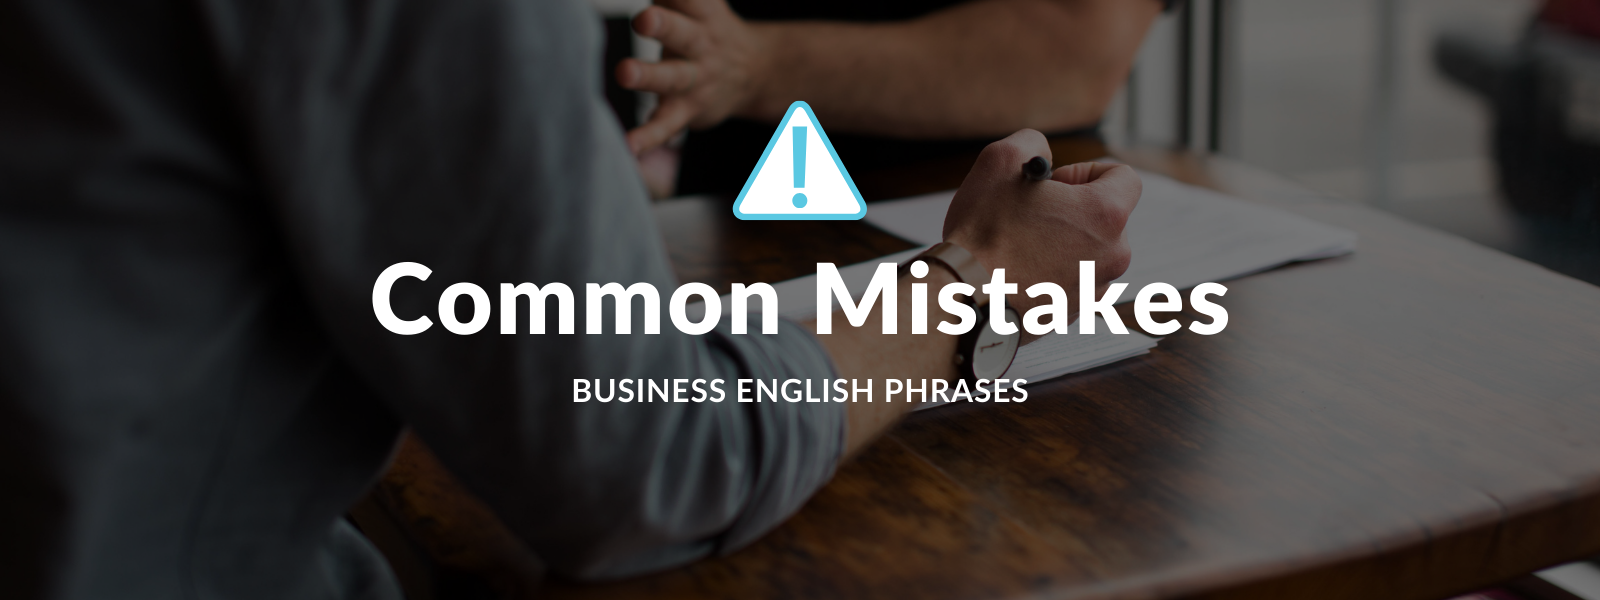 Common mistakes business English phrases Talaera